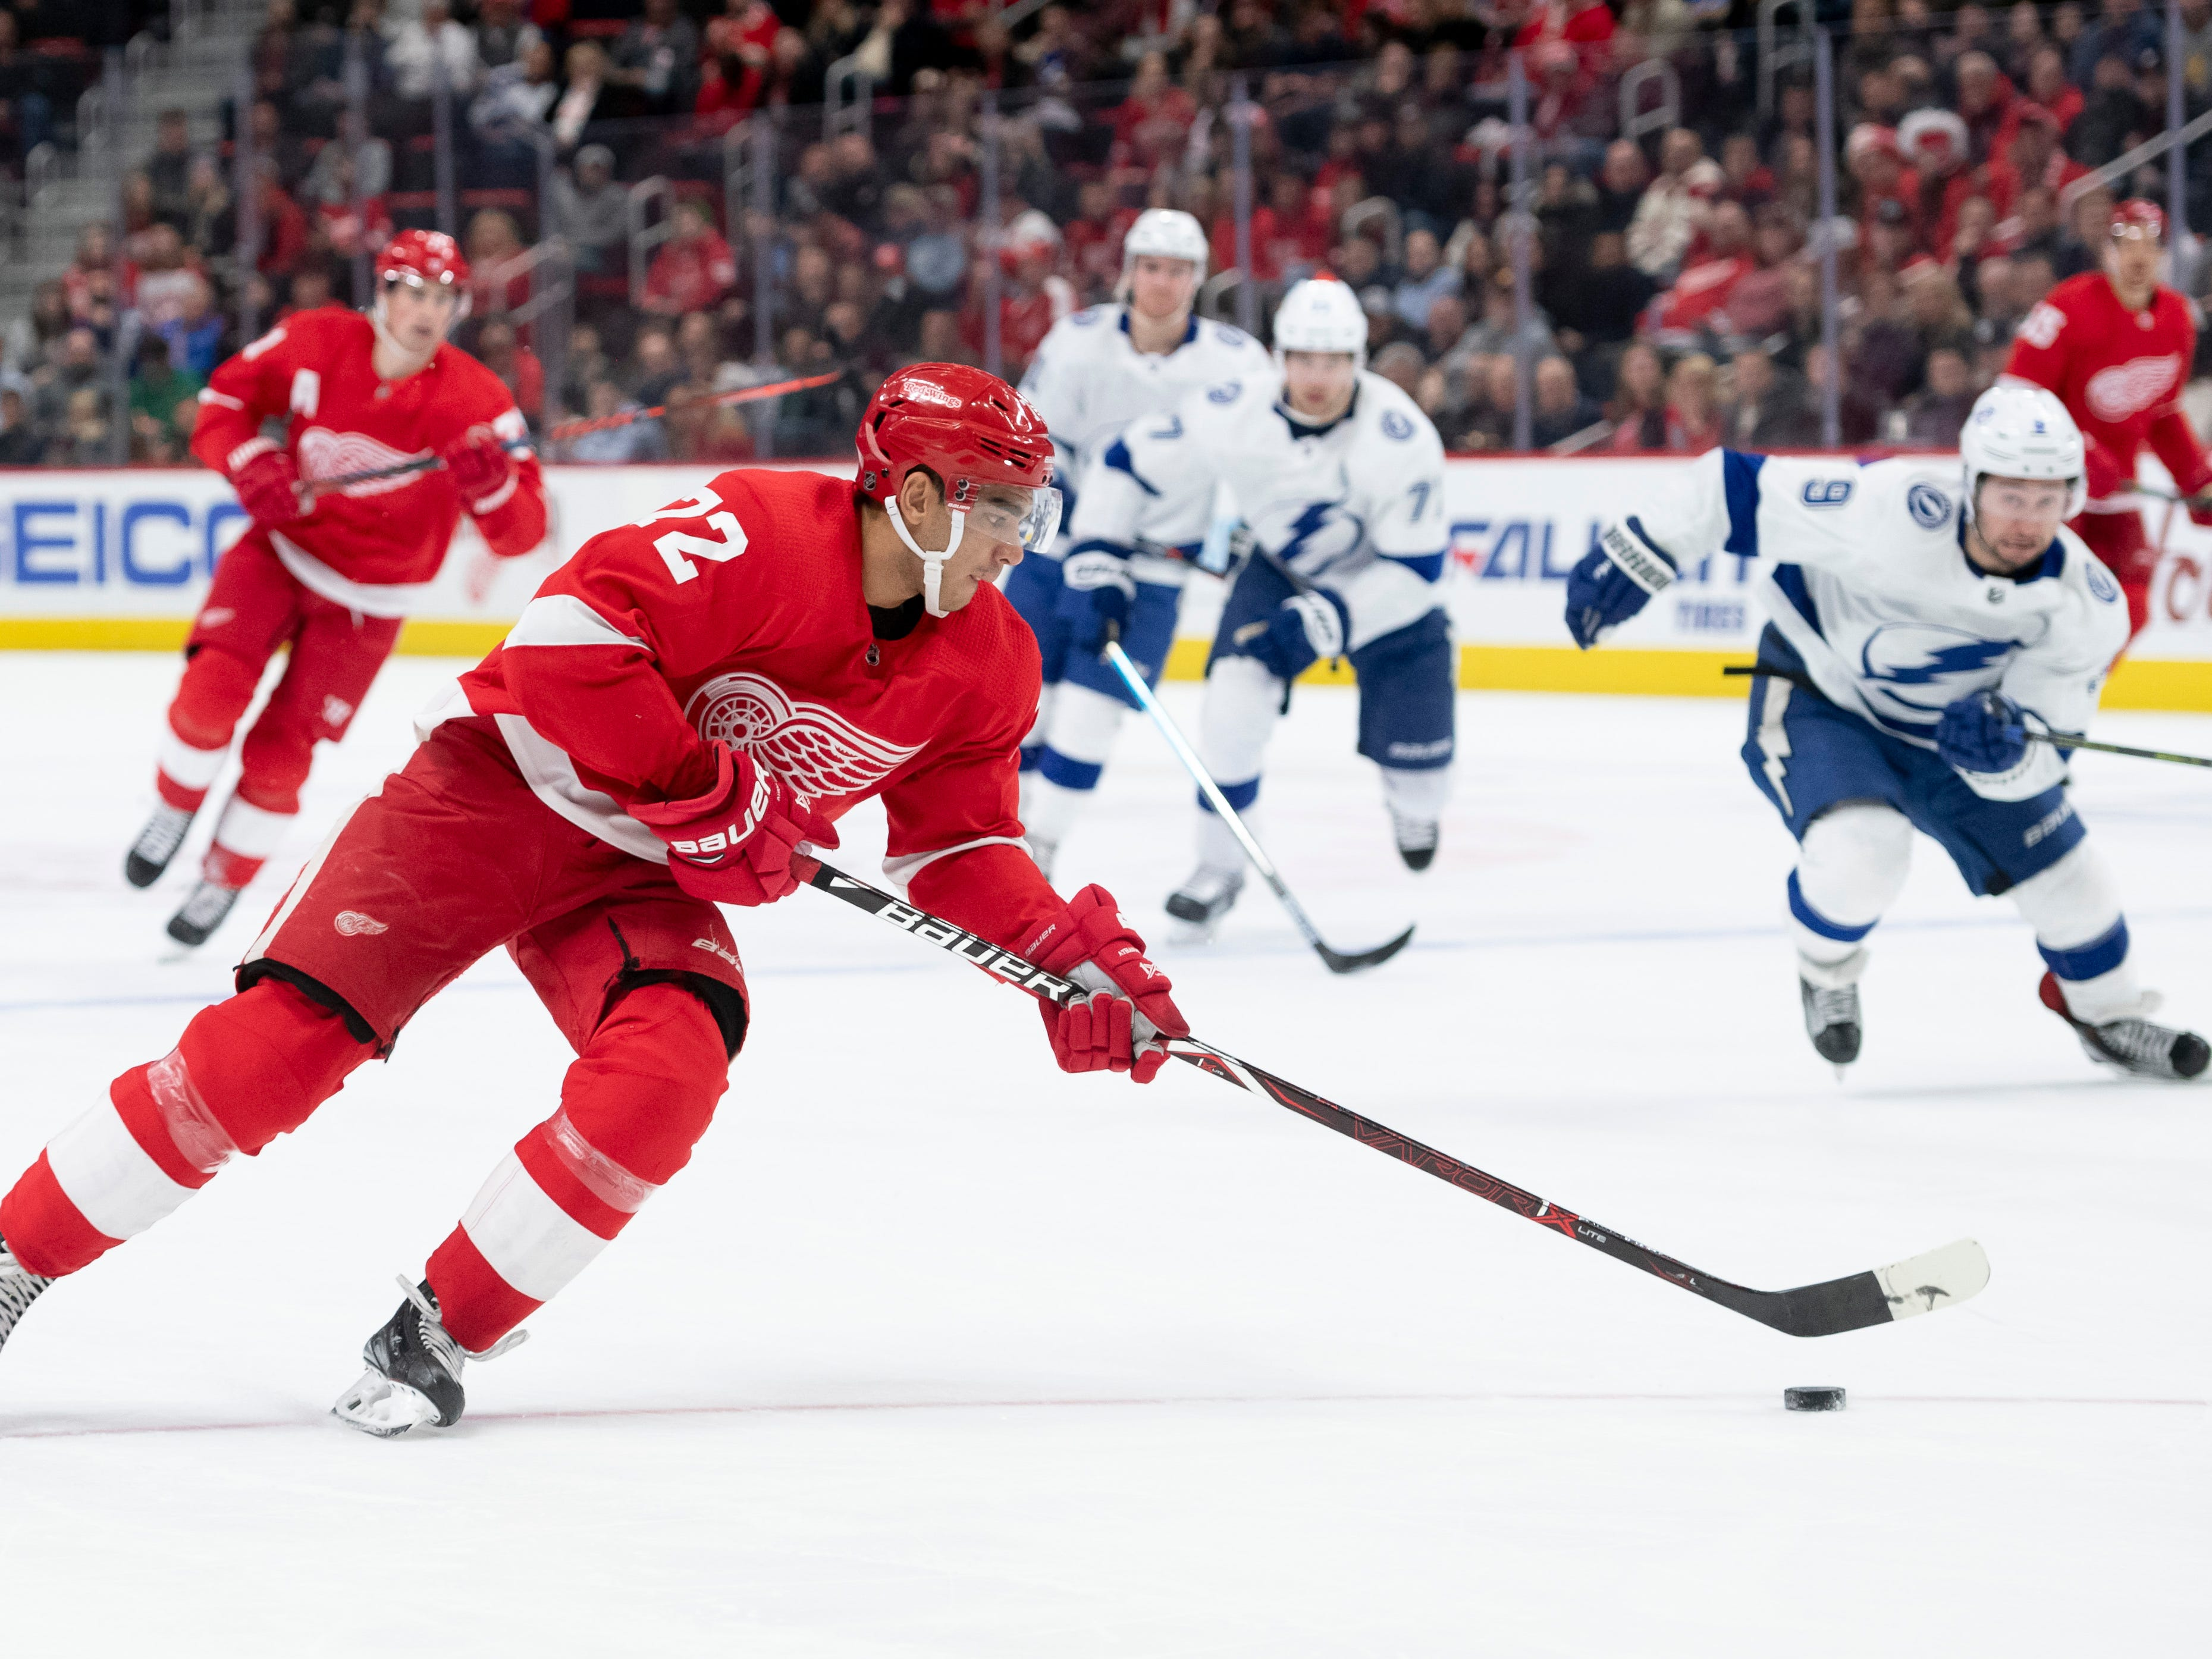 Detroit center Andreas Athanasiou moves the puck into Tampa's zone in the first period.